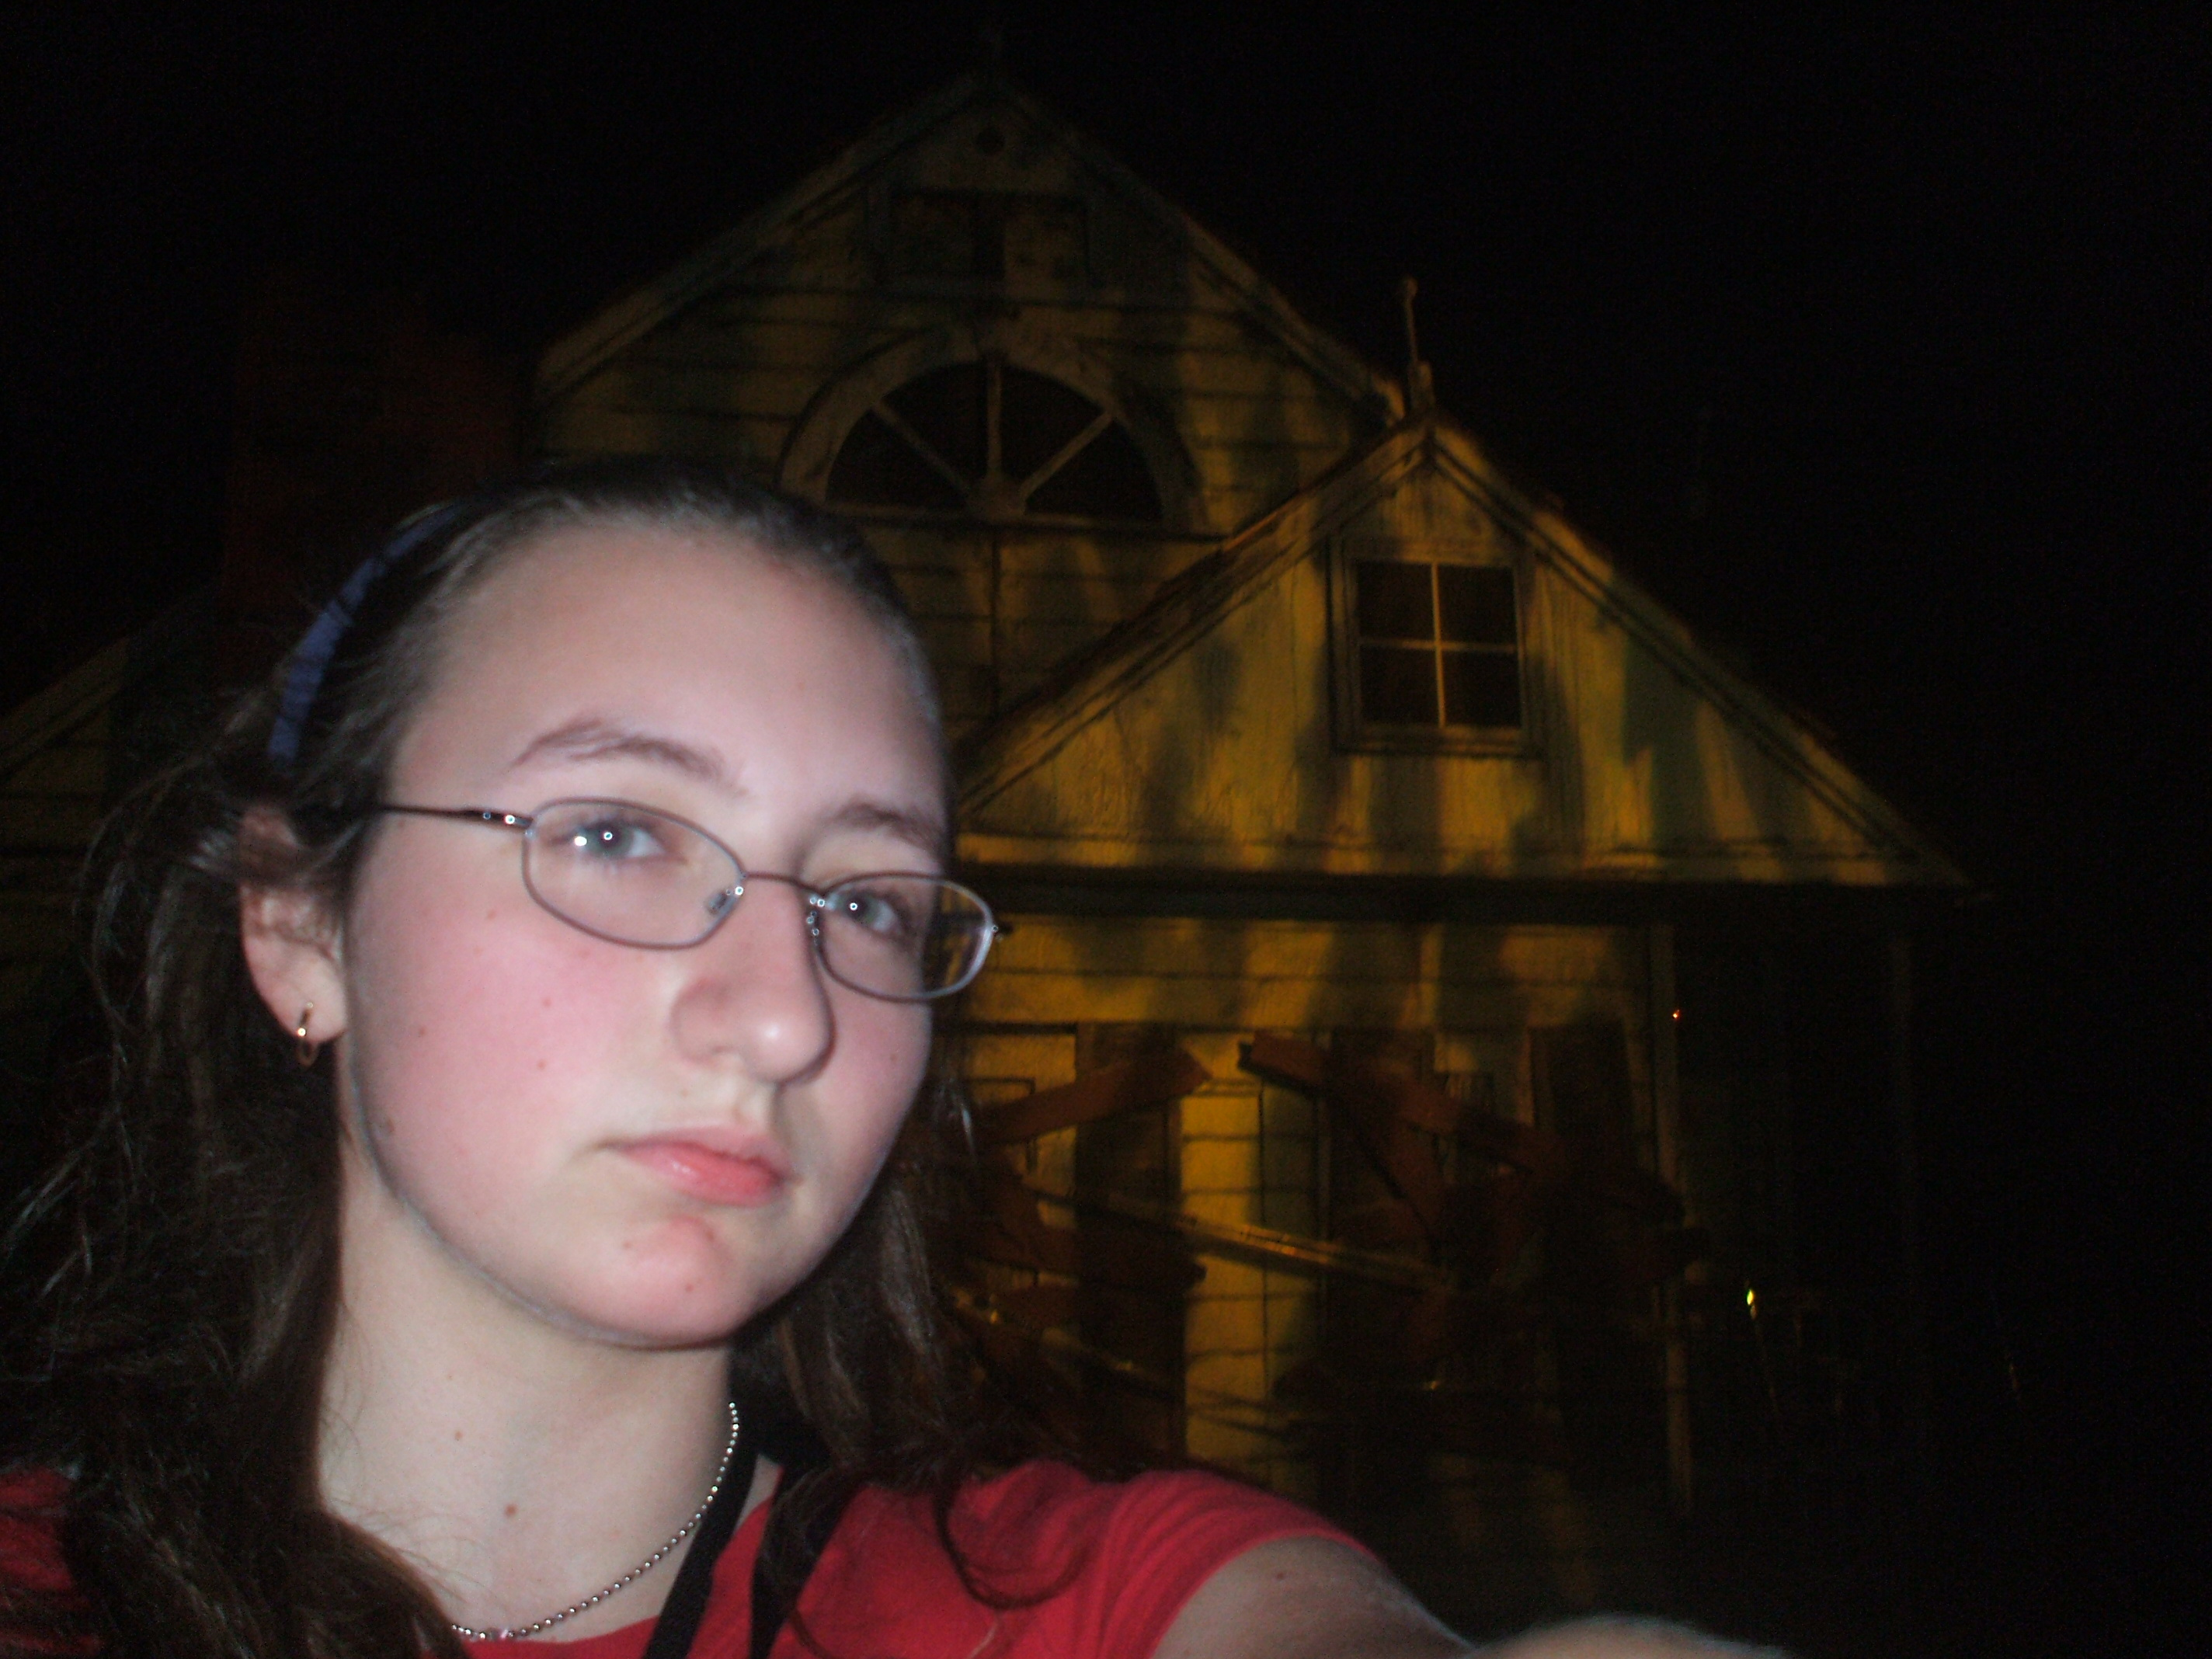 # 1 Daughter Opts Out of this Haunted House